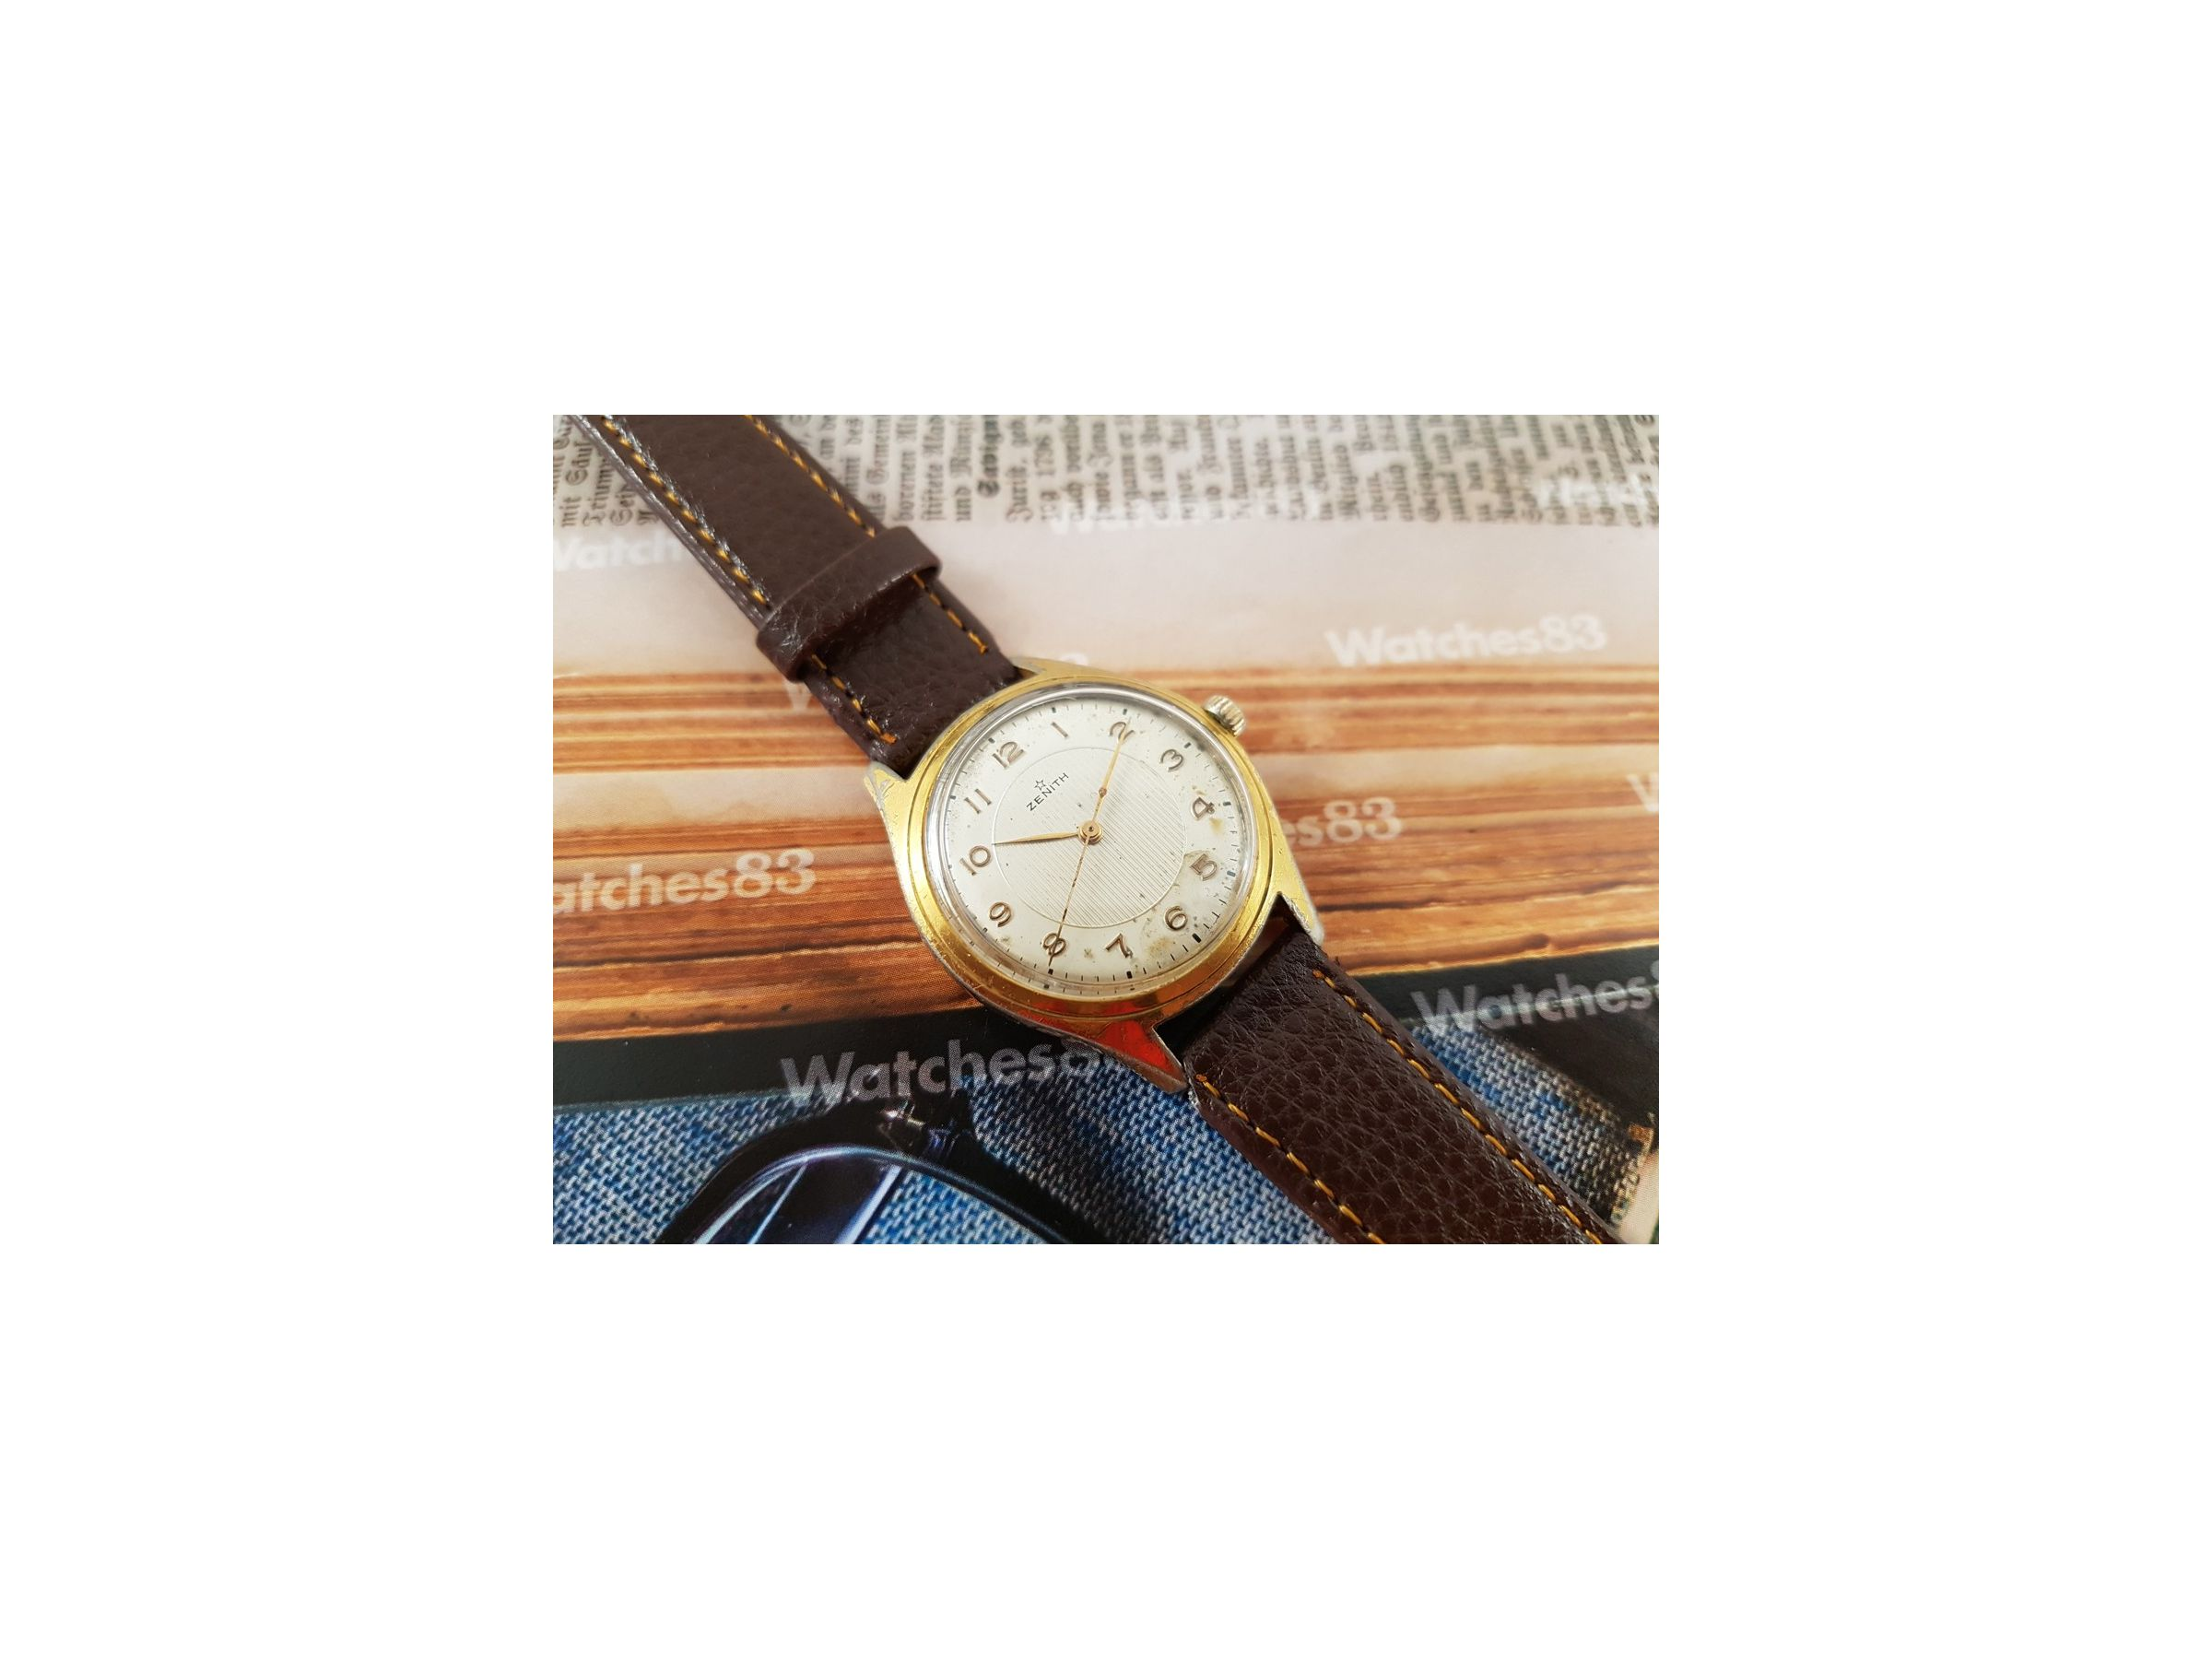 Zenith Reloj Suizo Antiguo De Cuerda Plaqu 233 Or Watches83